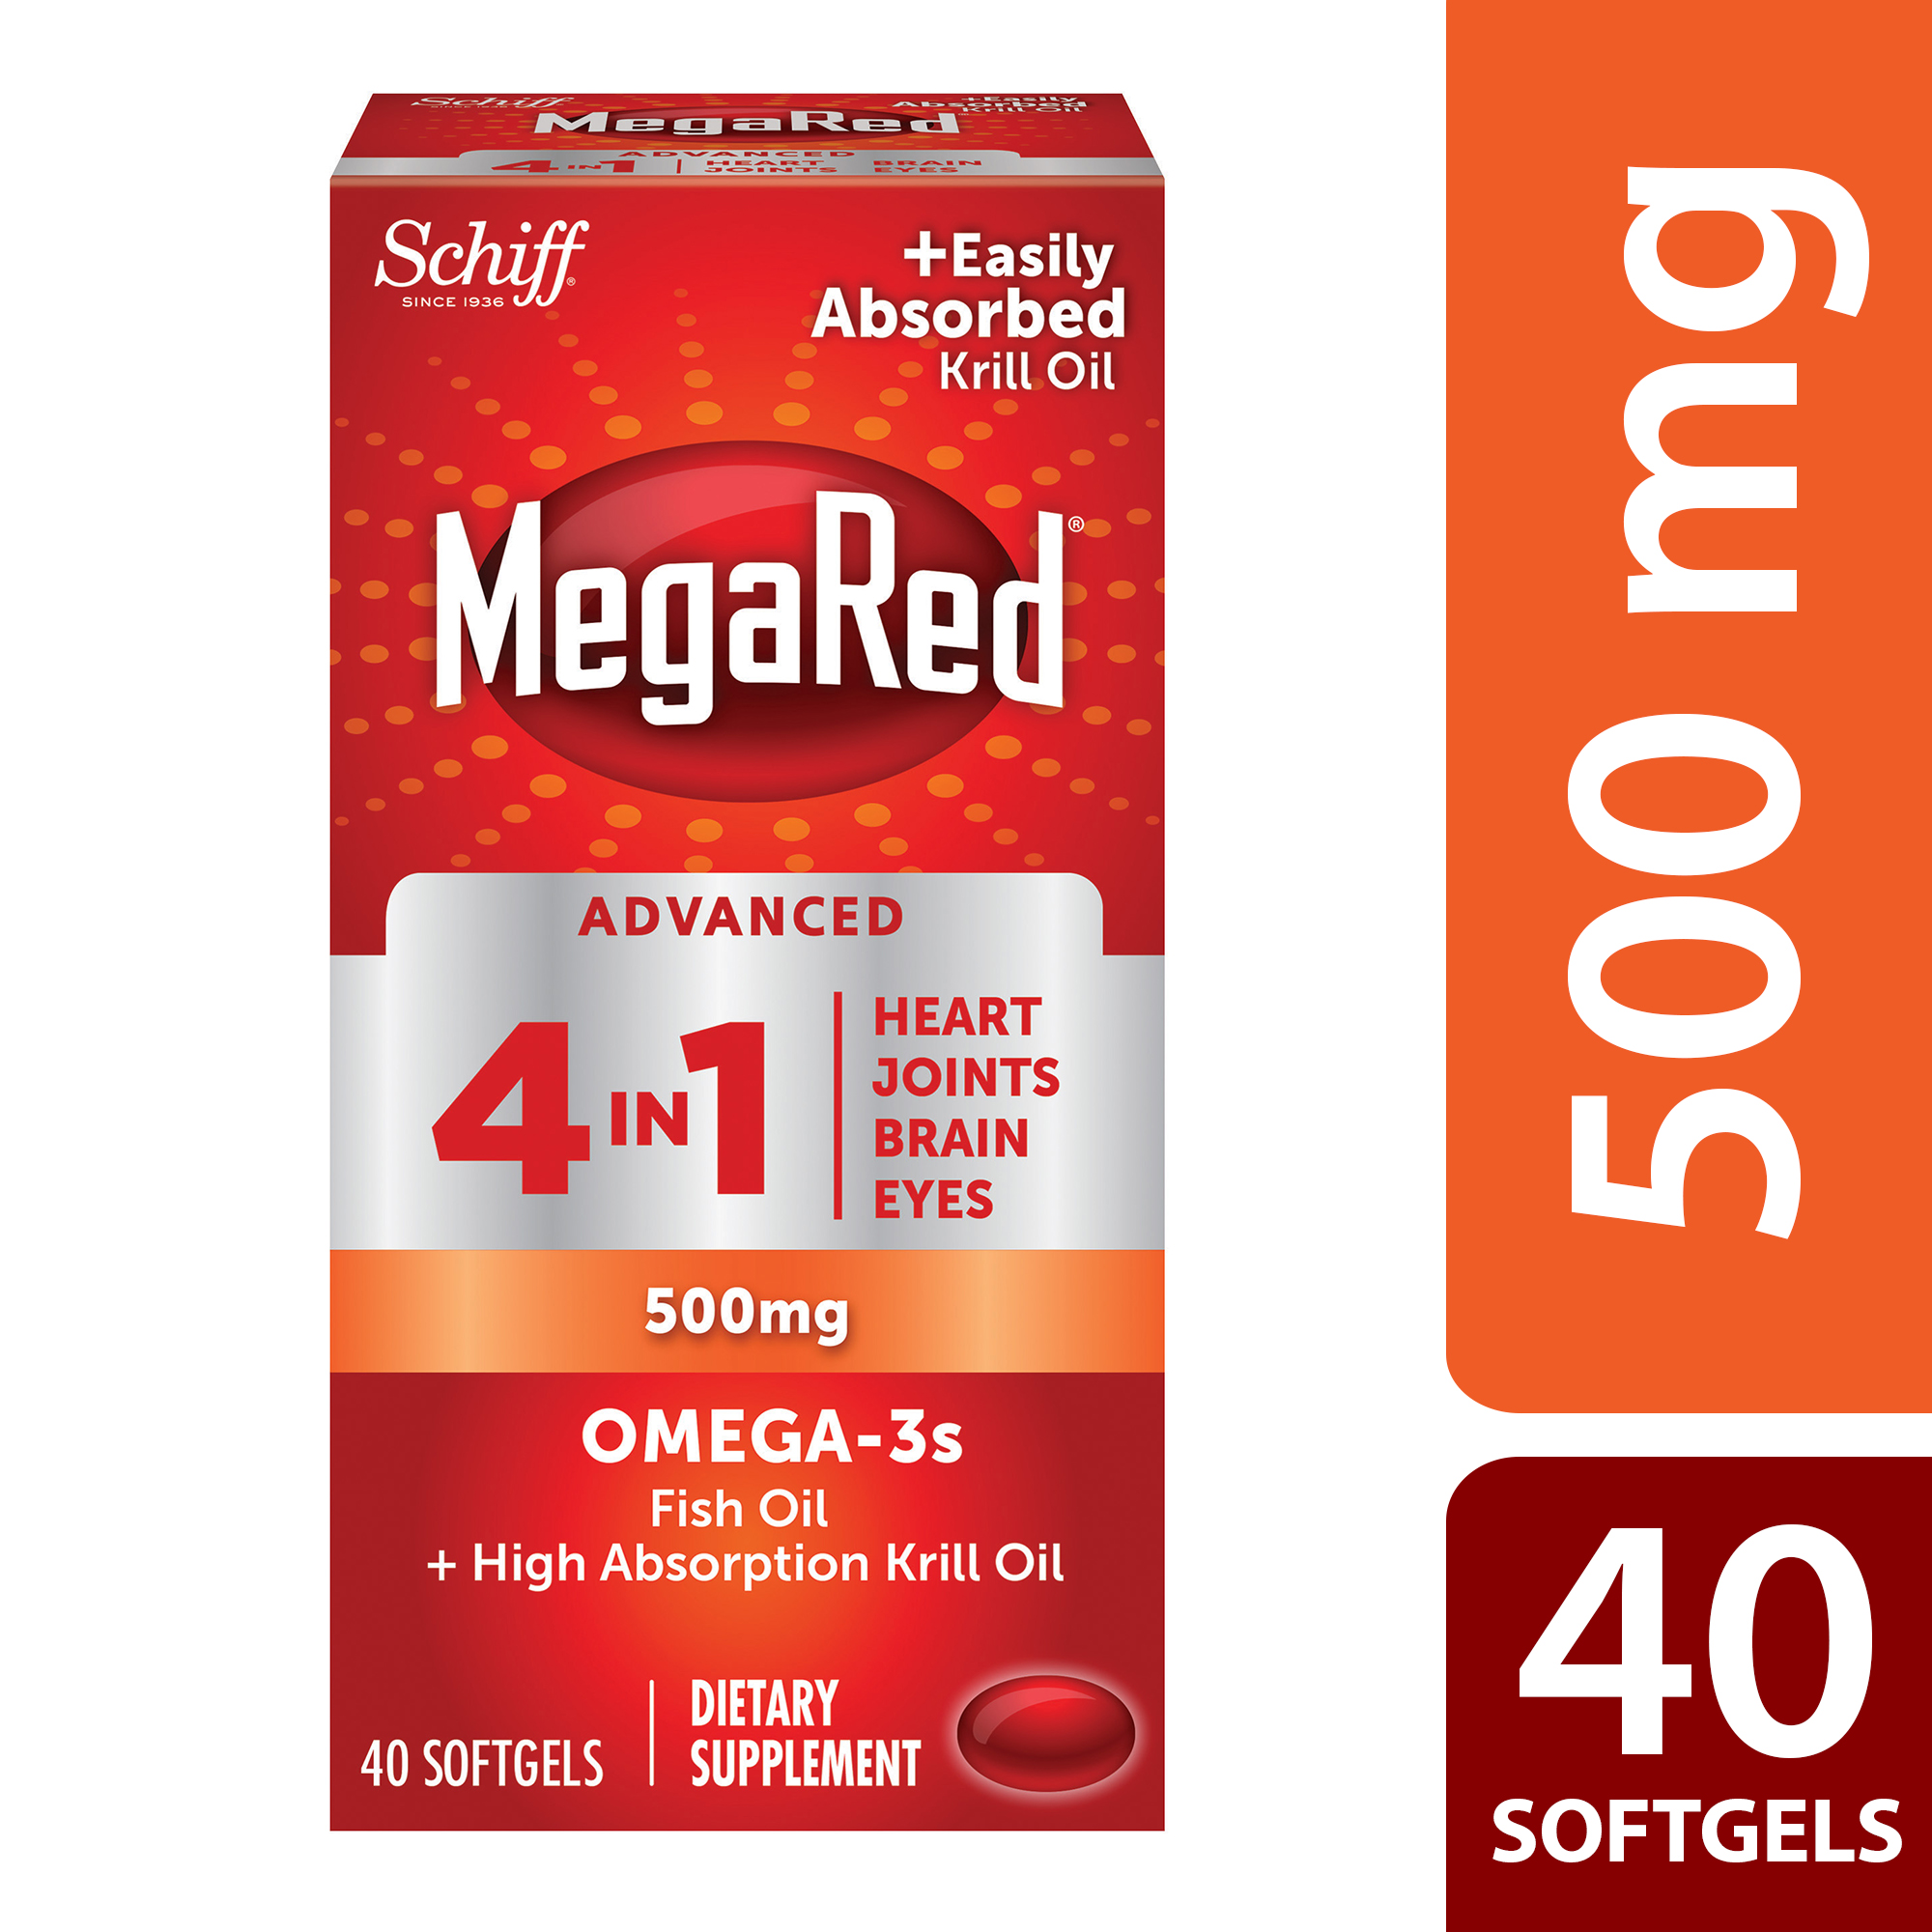 MegaRed Advanced 4 in 1 Omega-3 Fish Oil + Krill Oil Softgels, 500 Mg, 40 Ct